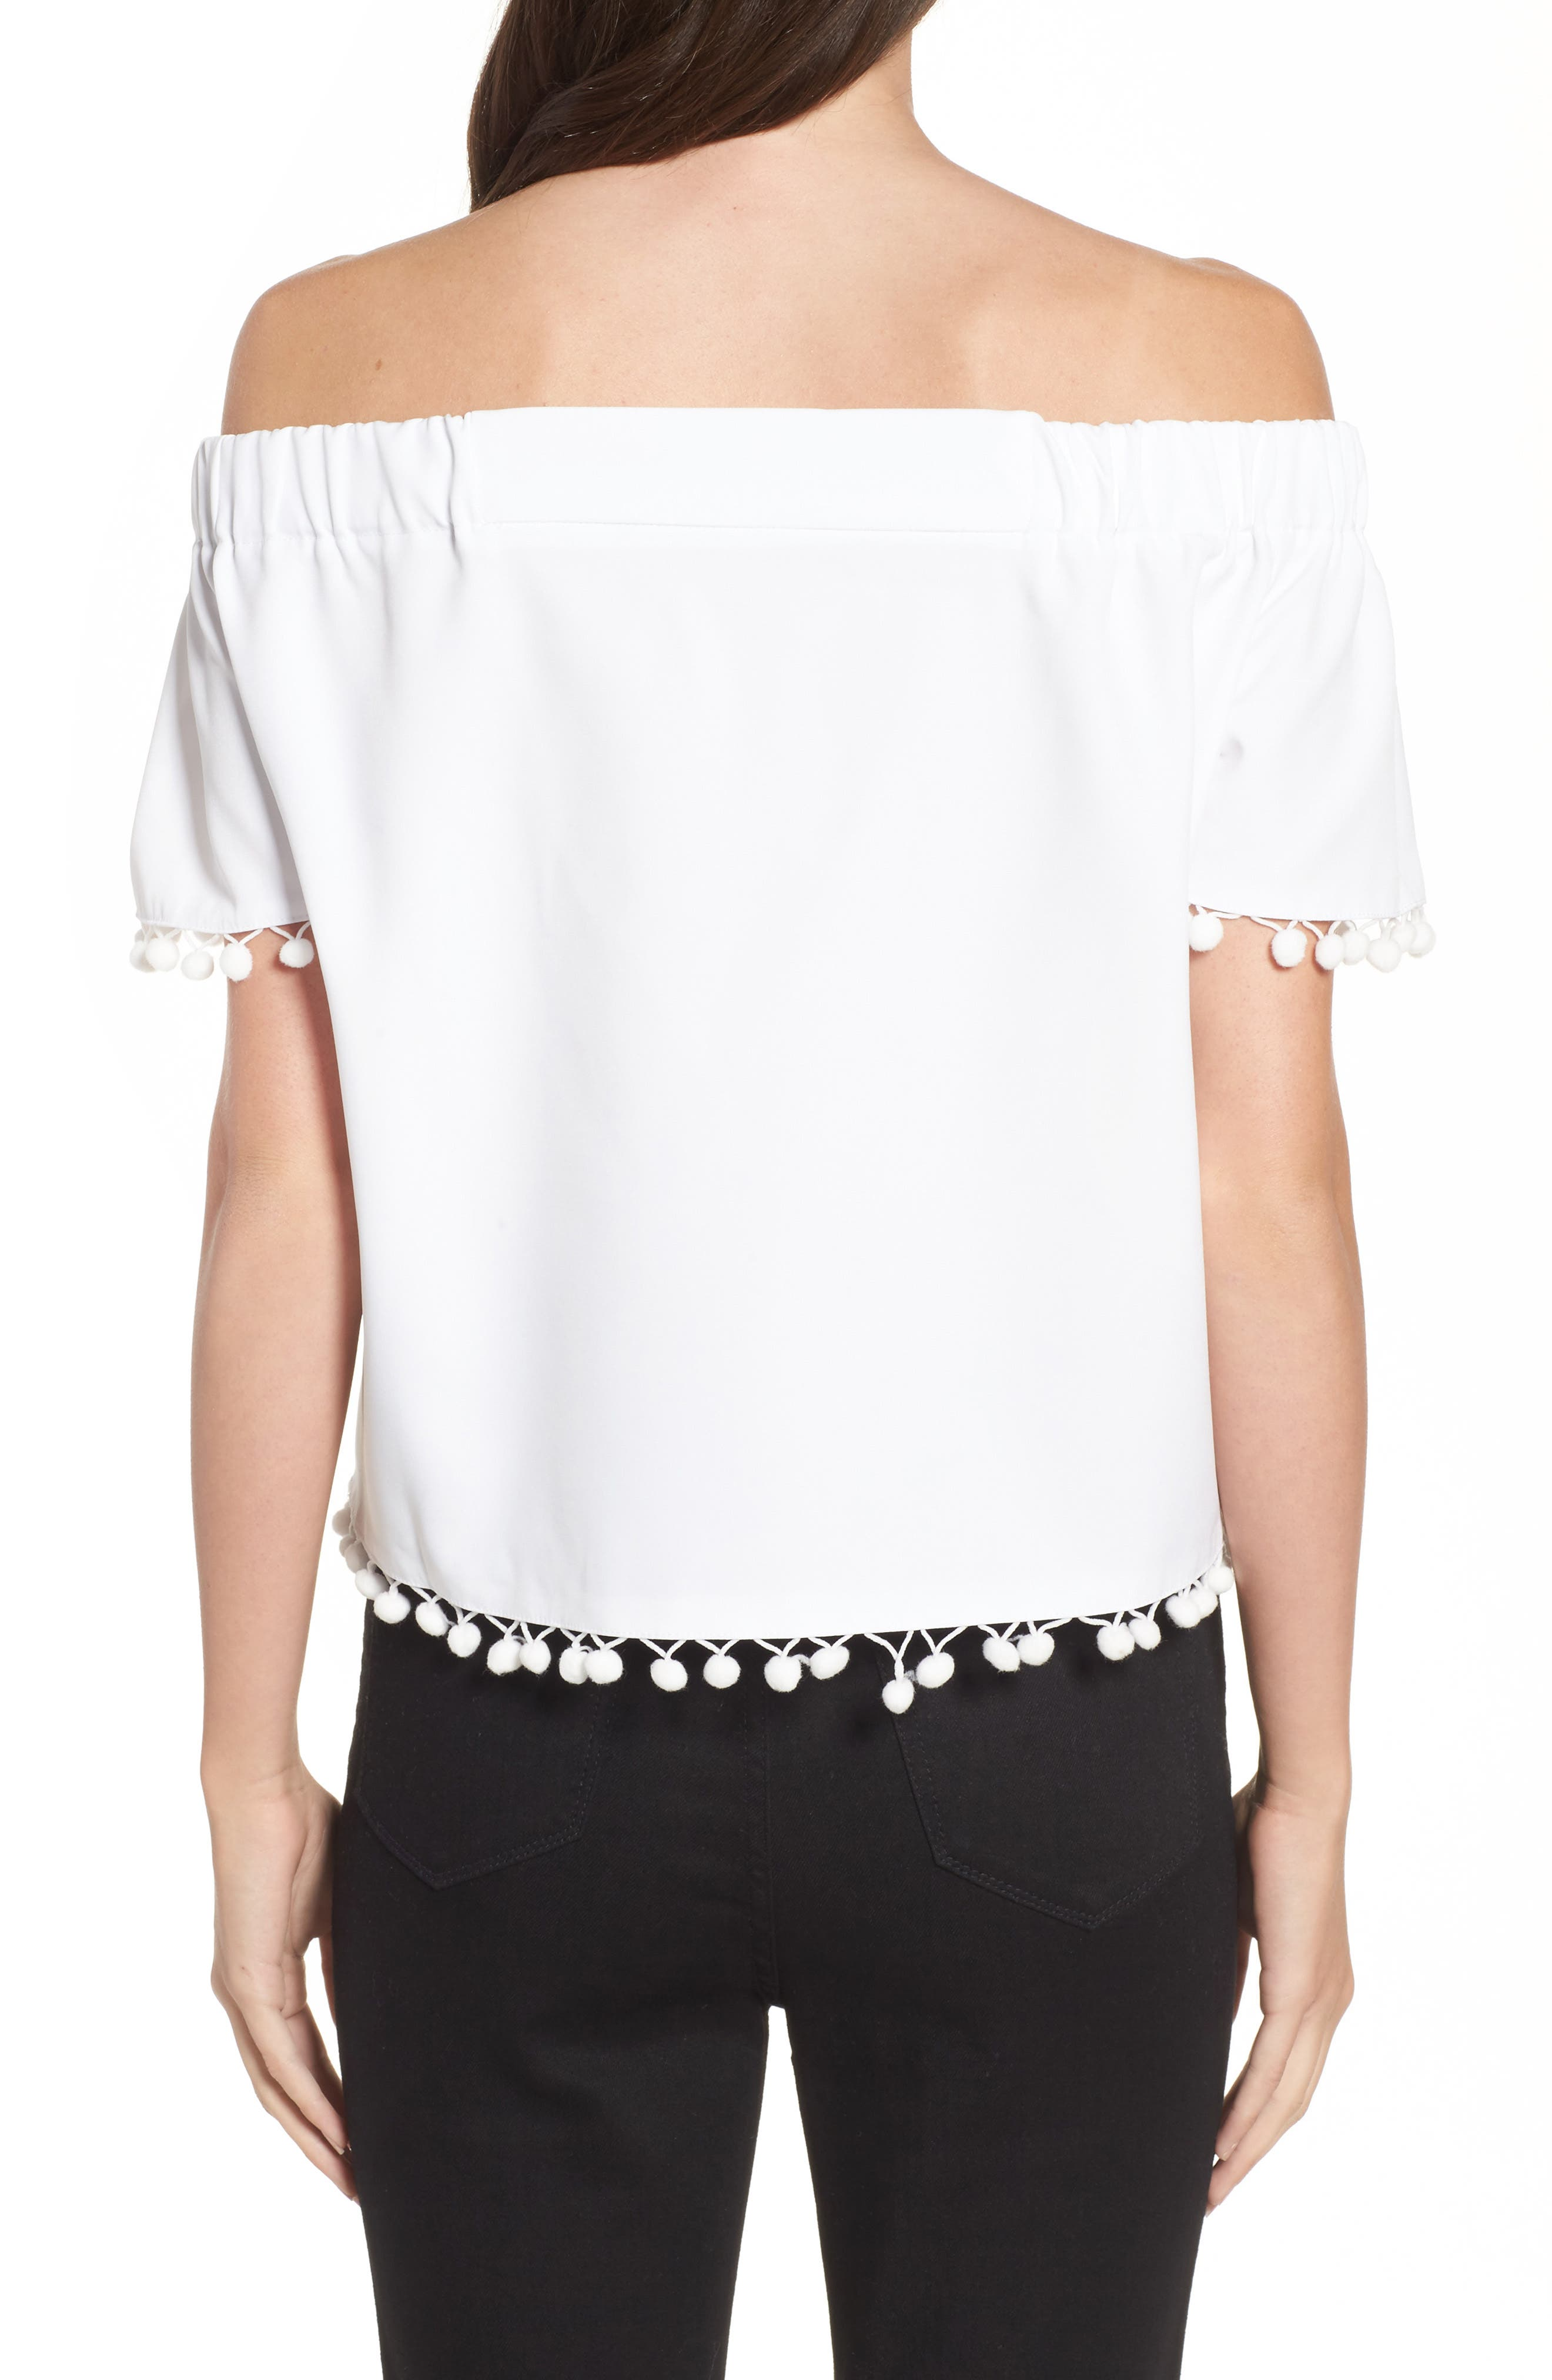 WILLOW & CLAY, Pompom Off the Shoulder Top, Alternate thumbnail 2, color, 106